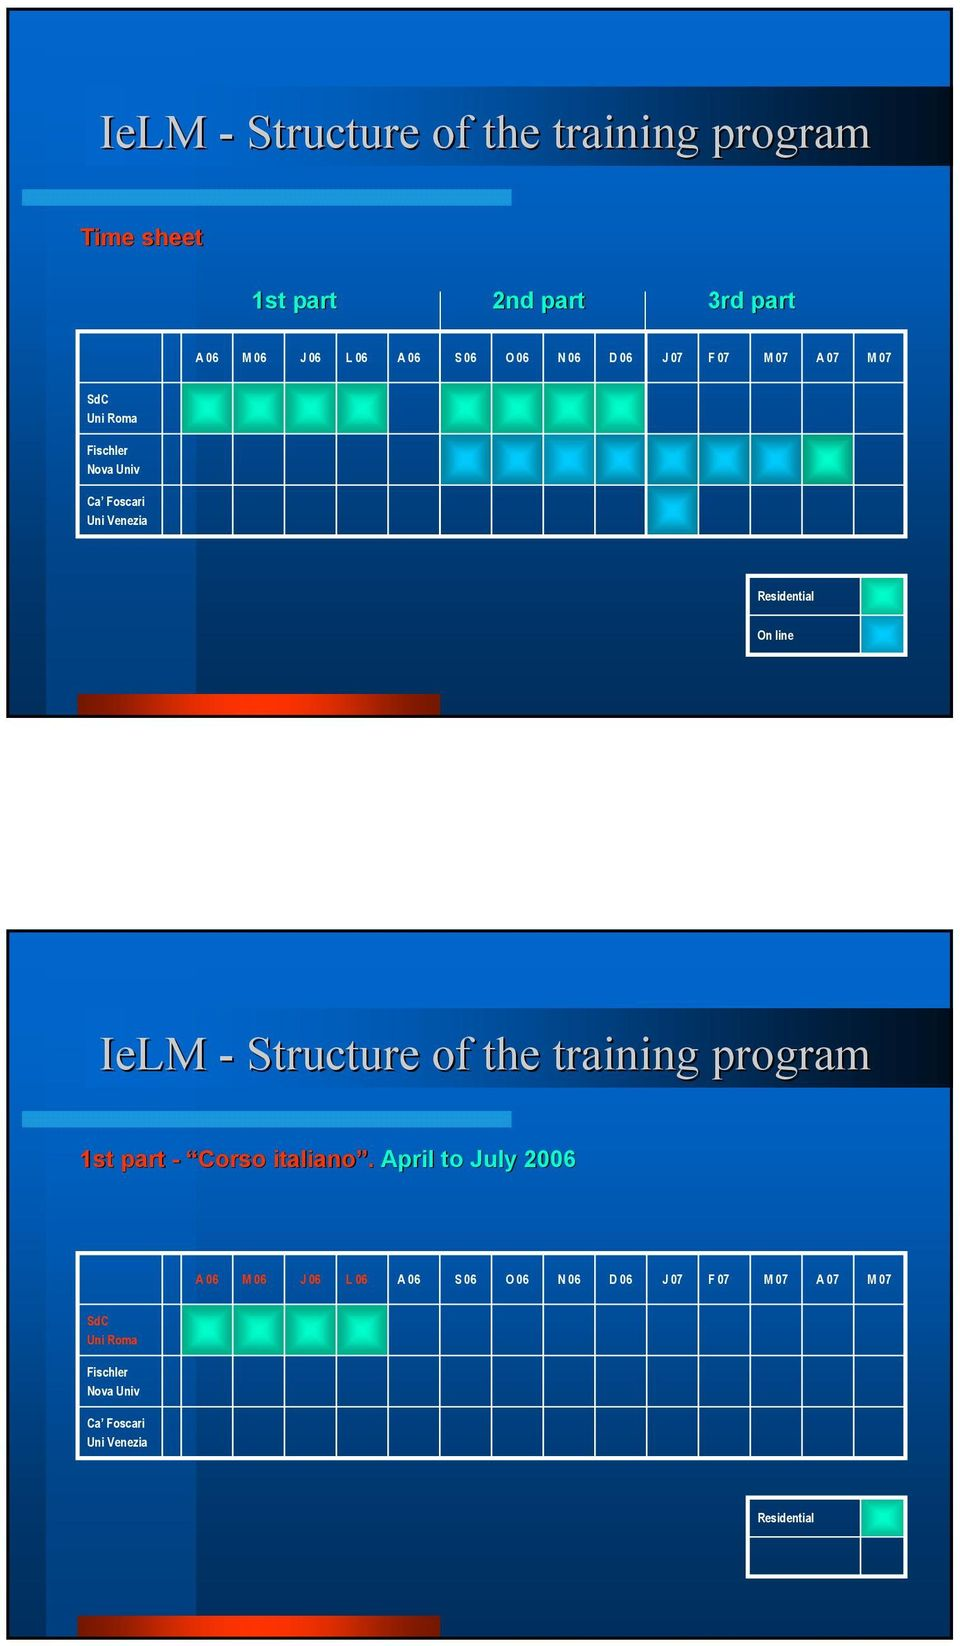 IeLM - Structure of the training program 1st part - Corso italiano.